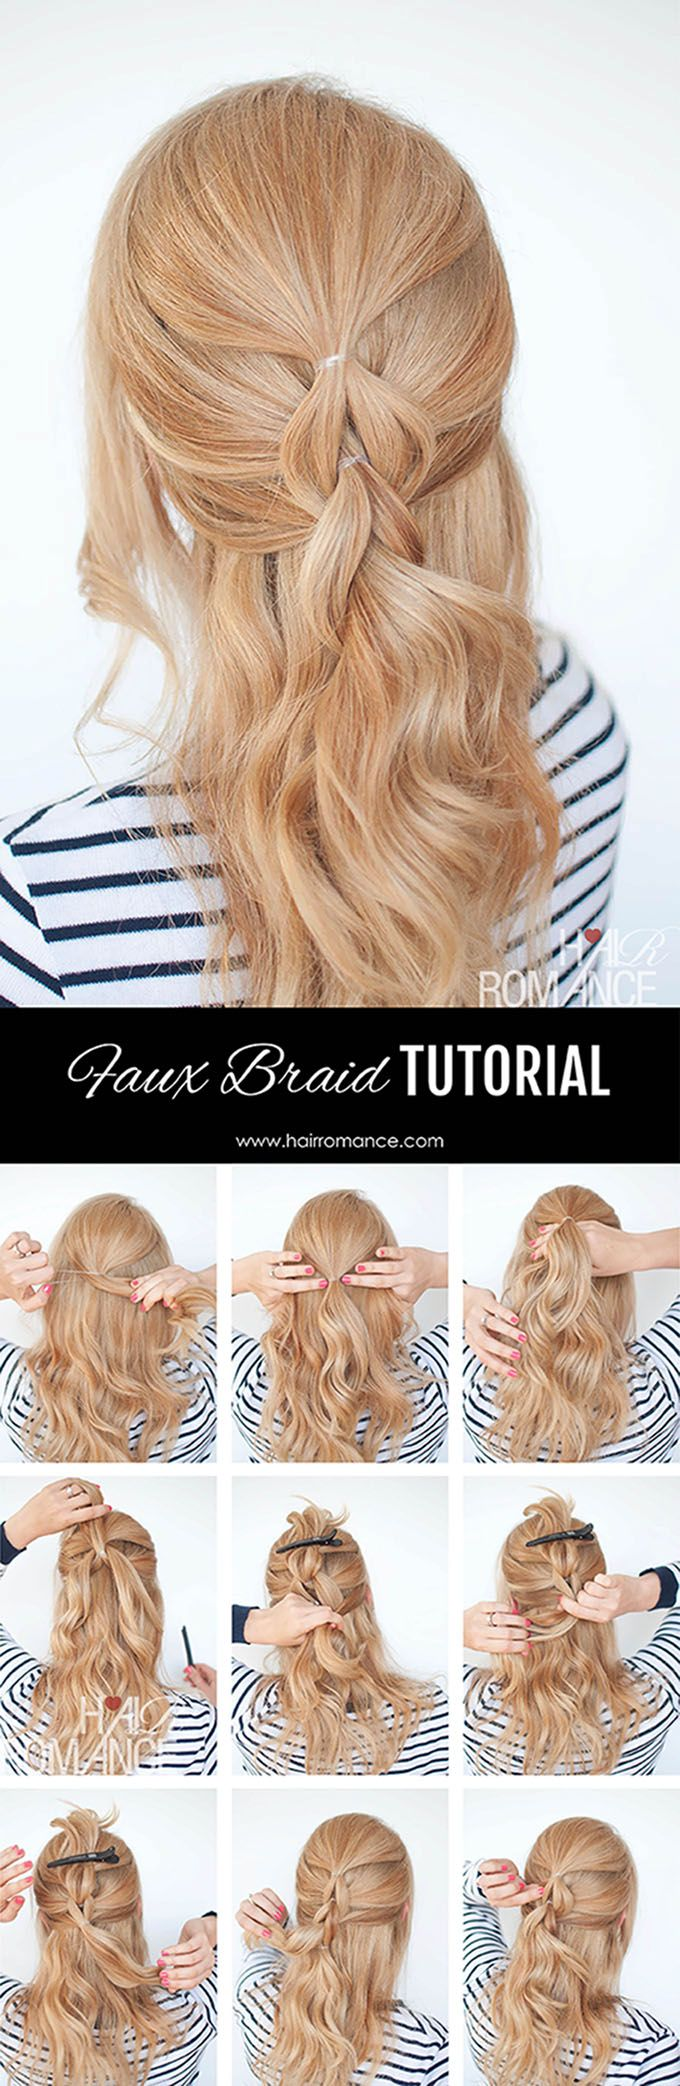 Best Hairstyles for Women: The no-braid braid – 5 pull-through braid tutorial...